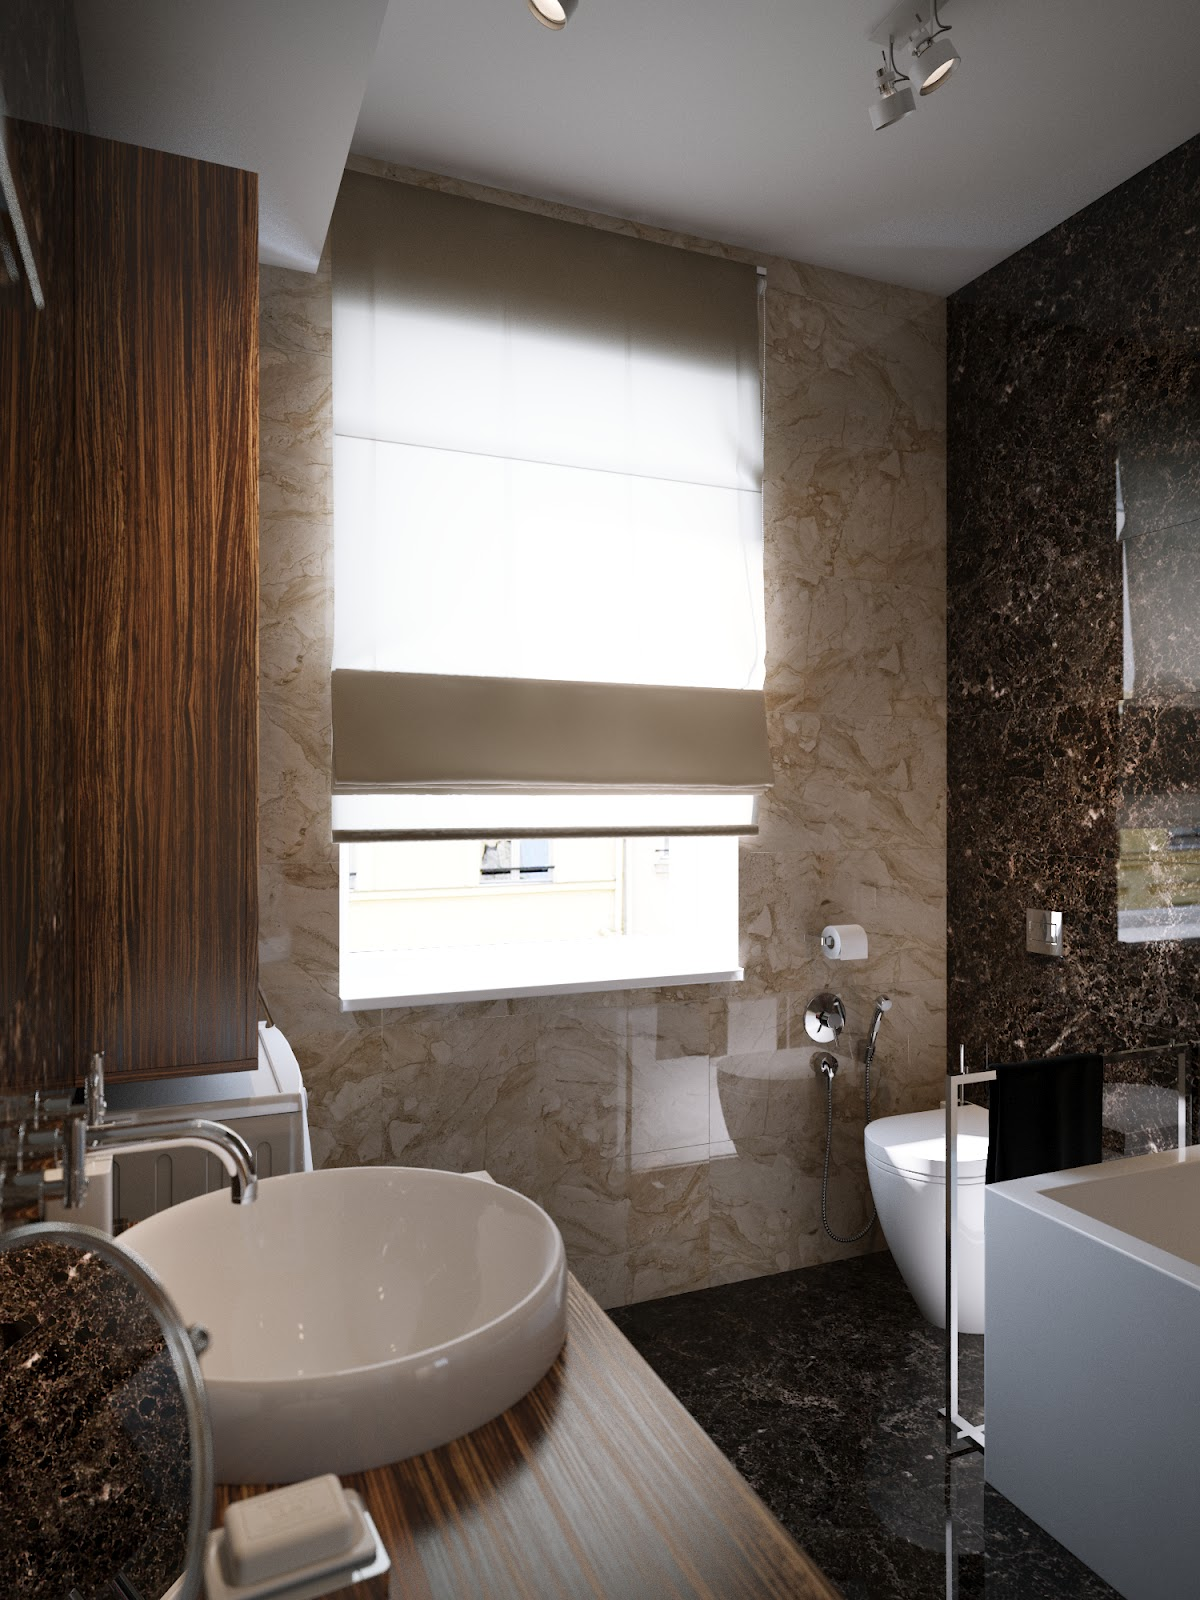 Modern bathroom design scheme interior design ideas for Sophisticated bathroom design